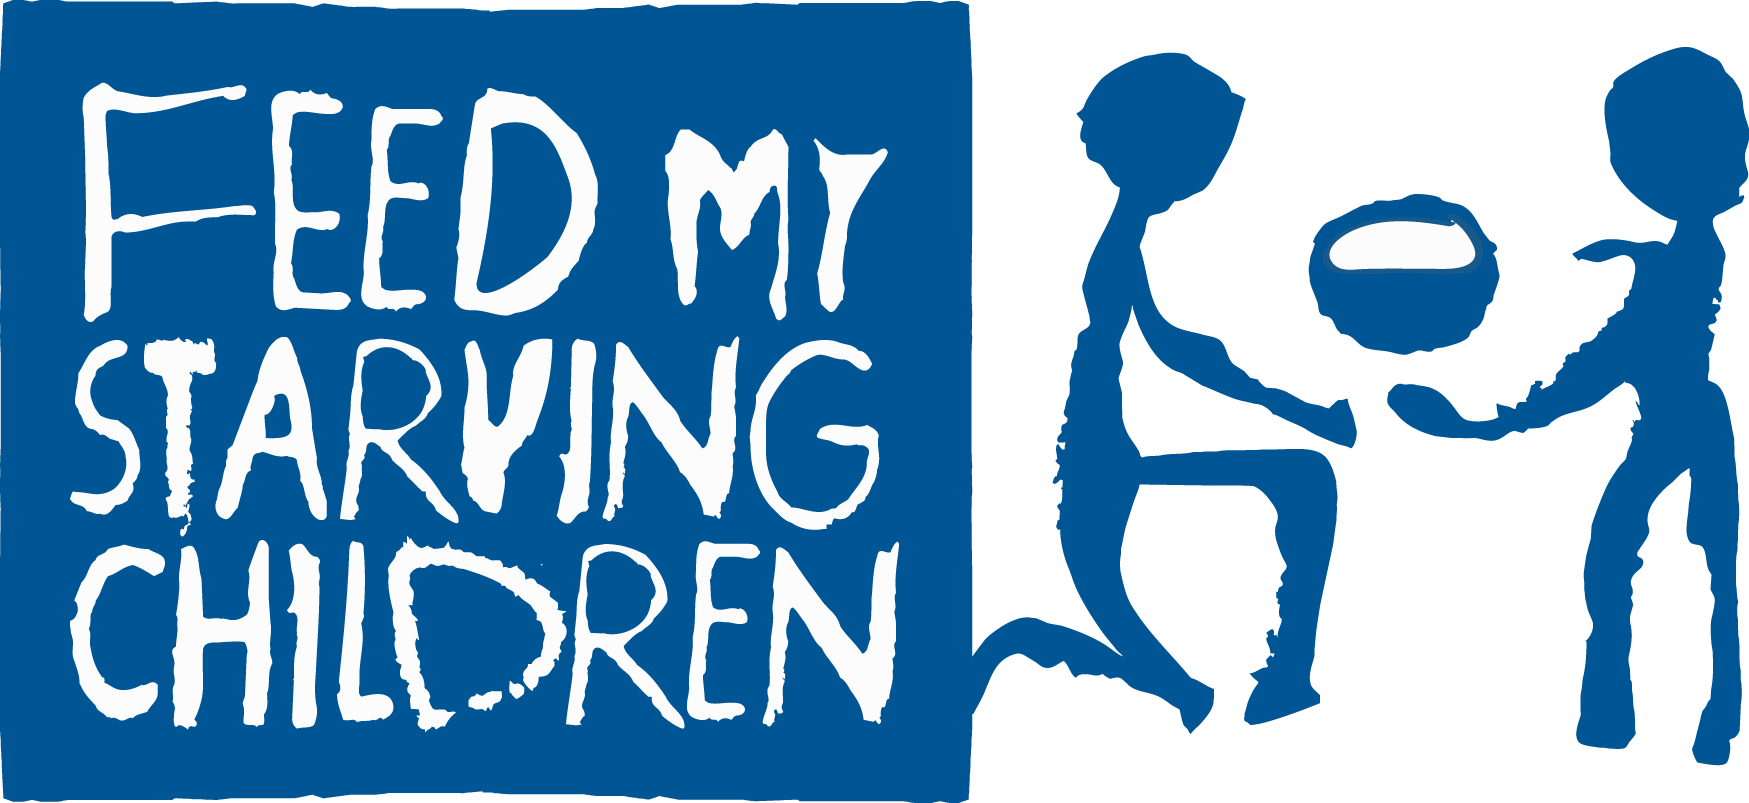 feed my starving children logo png